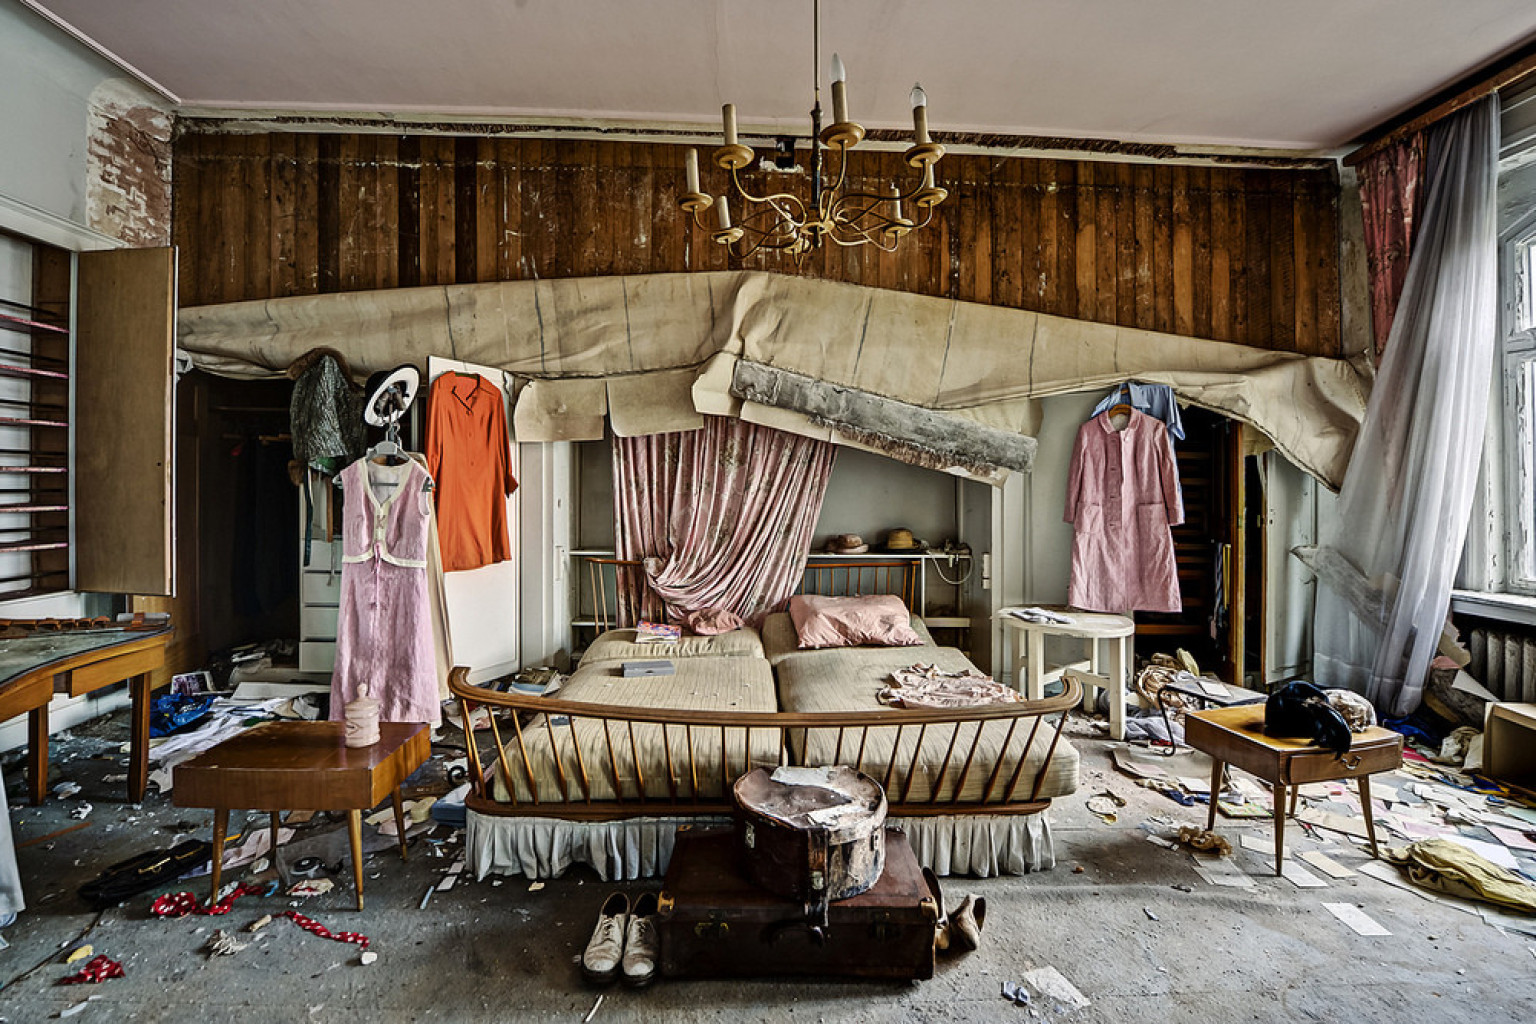 Abandoned Doctors House Photos Reveal The Past Lives Of A Mansion PHOTOS  HuffPost